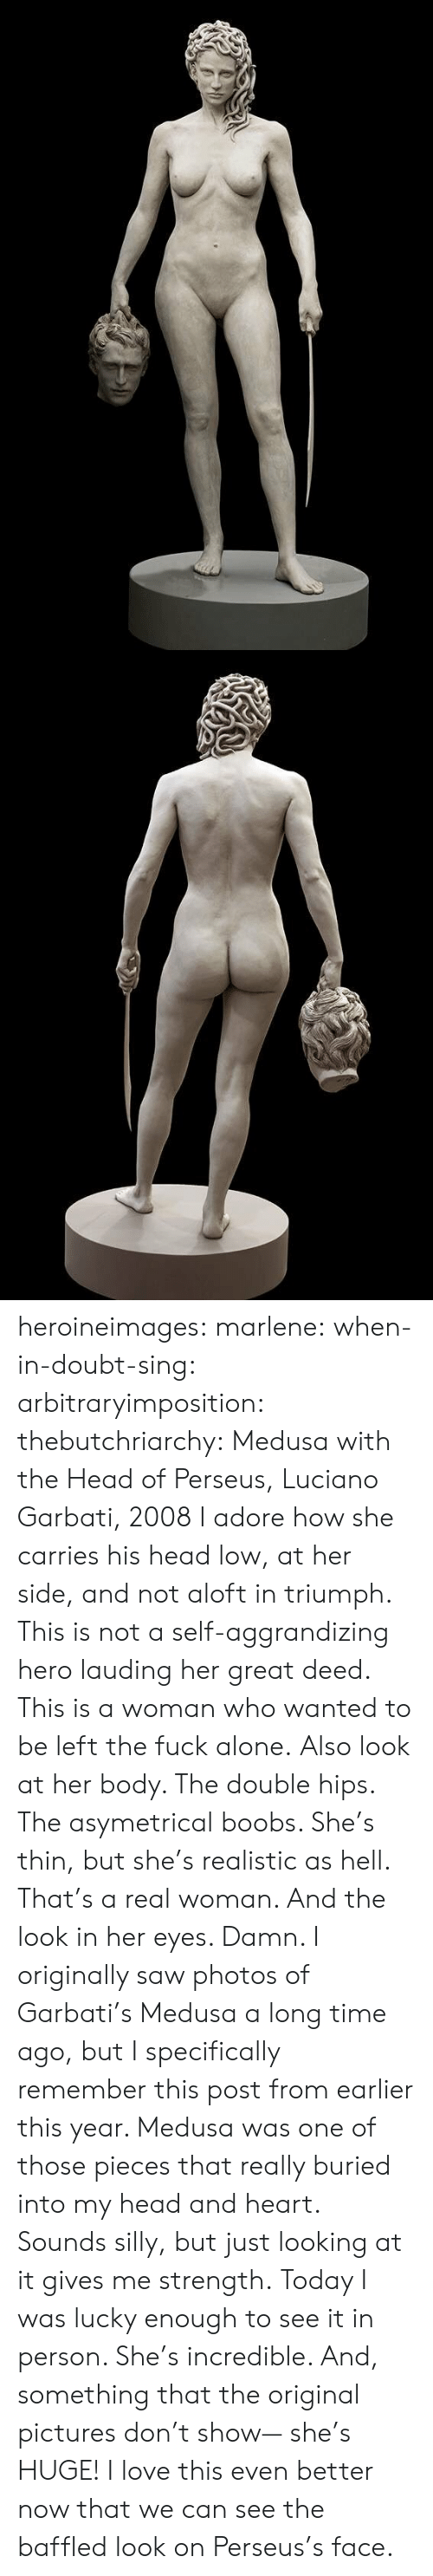 buried: heroineimages:  marlene:  when-in-doubt-sing:  arbitraryimposition:  thebutchriarchy: Medusa with the Head of Perseus, Luciano Garbati, 2008 I adore how she carries his head low, at her side, and not aloft in triumph.  This is not a self-aggrandizing hero lauding her great deed. This is a woman who wanted to be left the fuck alone.   Also look at her body. The double hips. The asymetrical boobs. She's thin, but she's realistic as hell. That's a real woman.  And the look in her eyes. Damn.   I originally saw photos of Garbati's Medusa a long time ago, but I specifically remember this post from earlier this year. Medusa was one of those pieces that really buried into my head and heart. Sounds silly, but just looking at it gives me strength. Today I was lucky enough to see it in person. She's incredible. And, something that the original pictures don't show— she's HUGE!    I love this even better now that we can see the baffled look on Perseus's face.